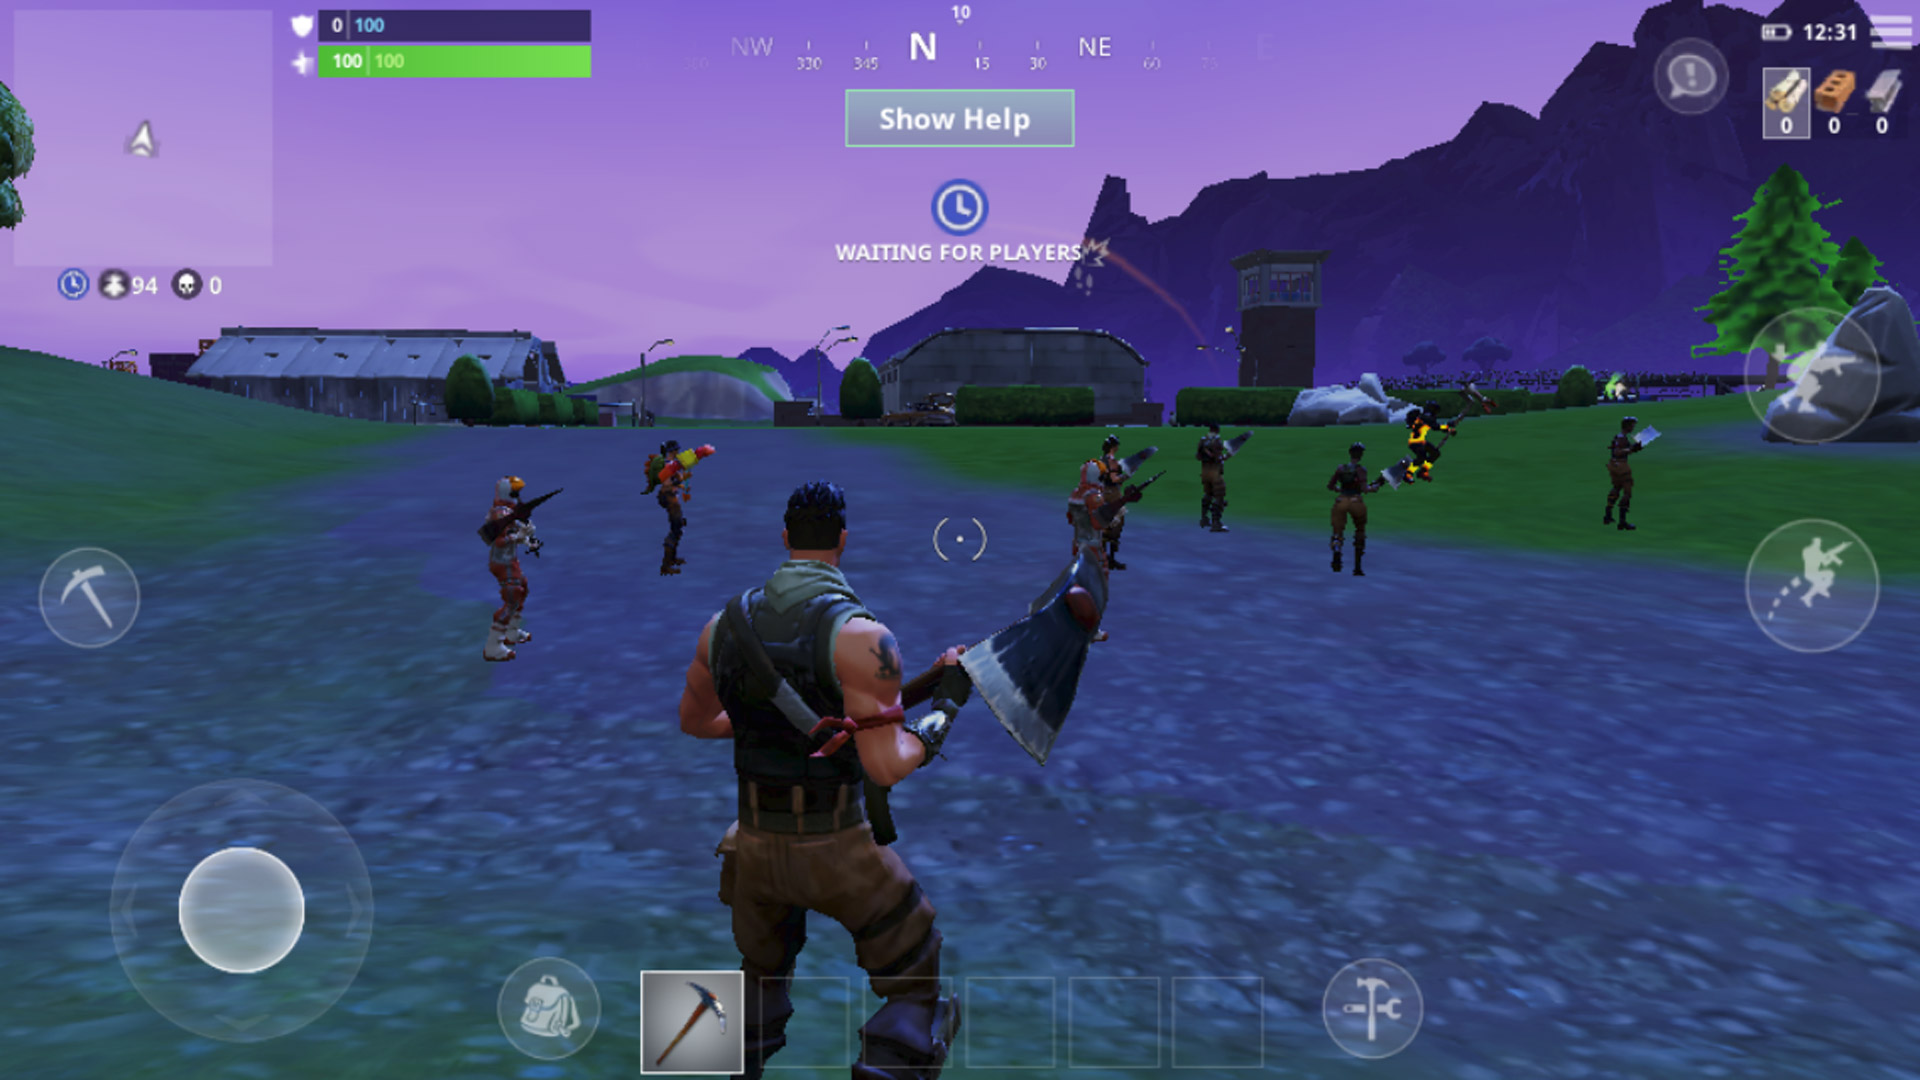 Fortnite Android Screenshot